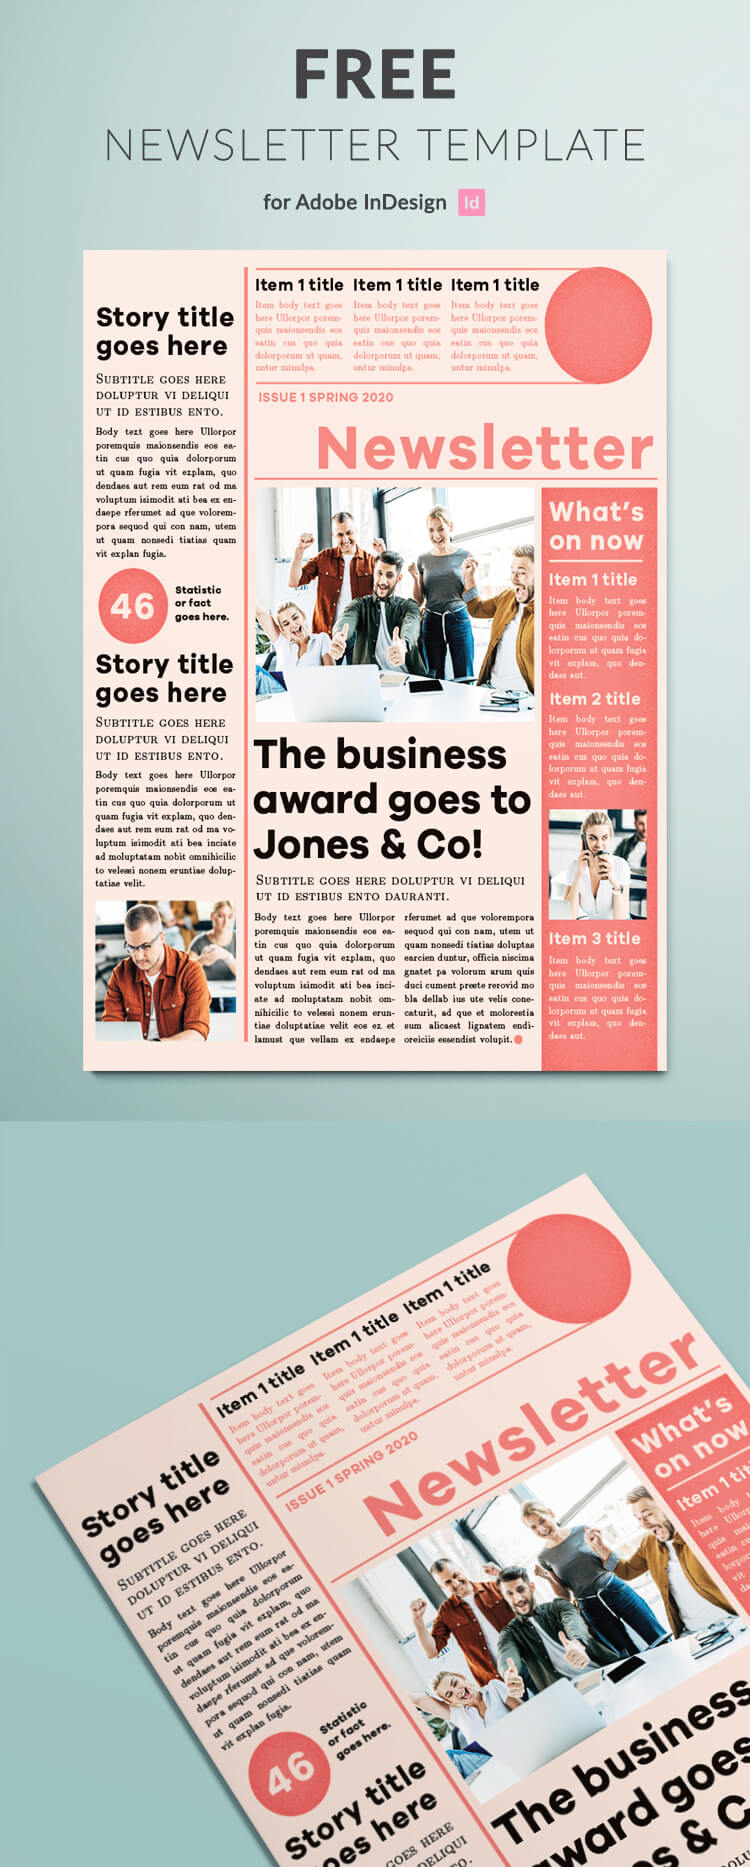 Free newsletter template for InDesign. Classic design for a business newsletter.